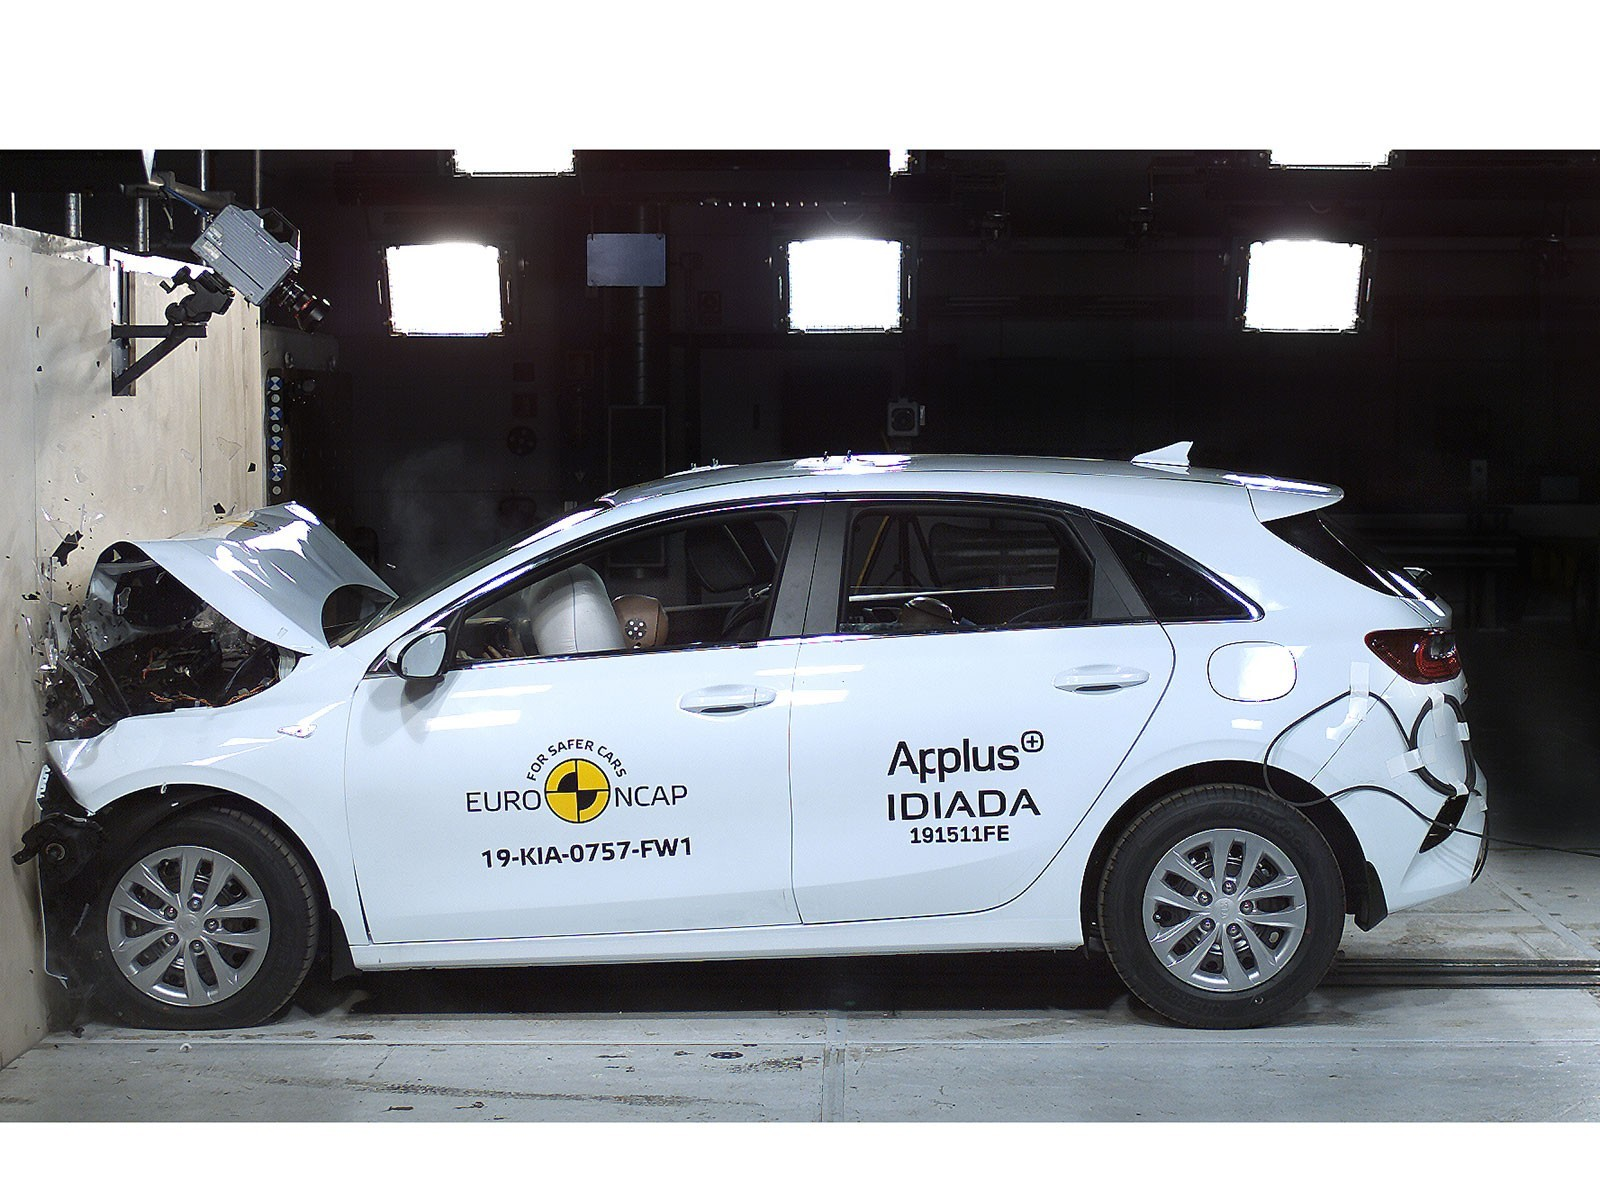 Oeamtc crashtest sechs autos safety pack bringt sicherheits plus 004